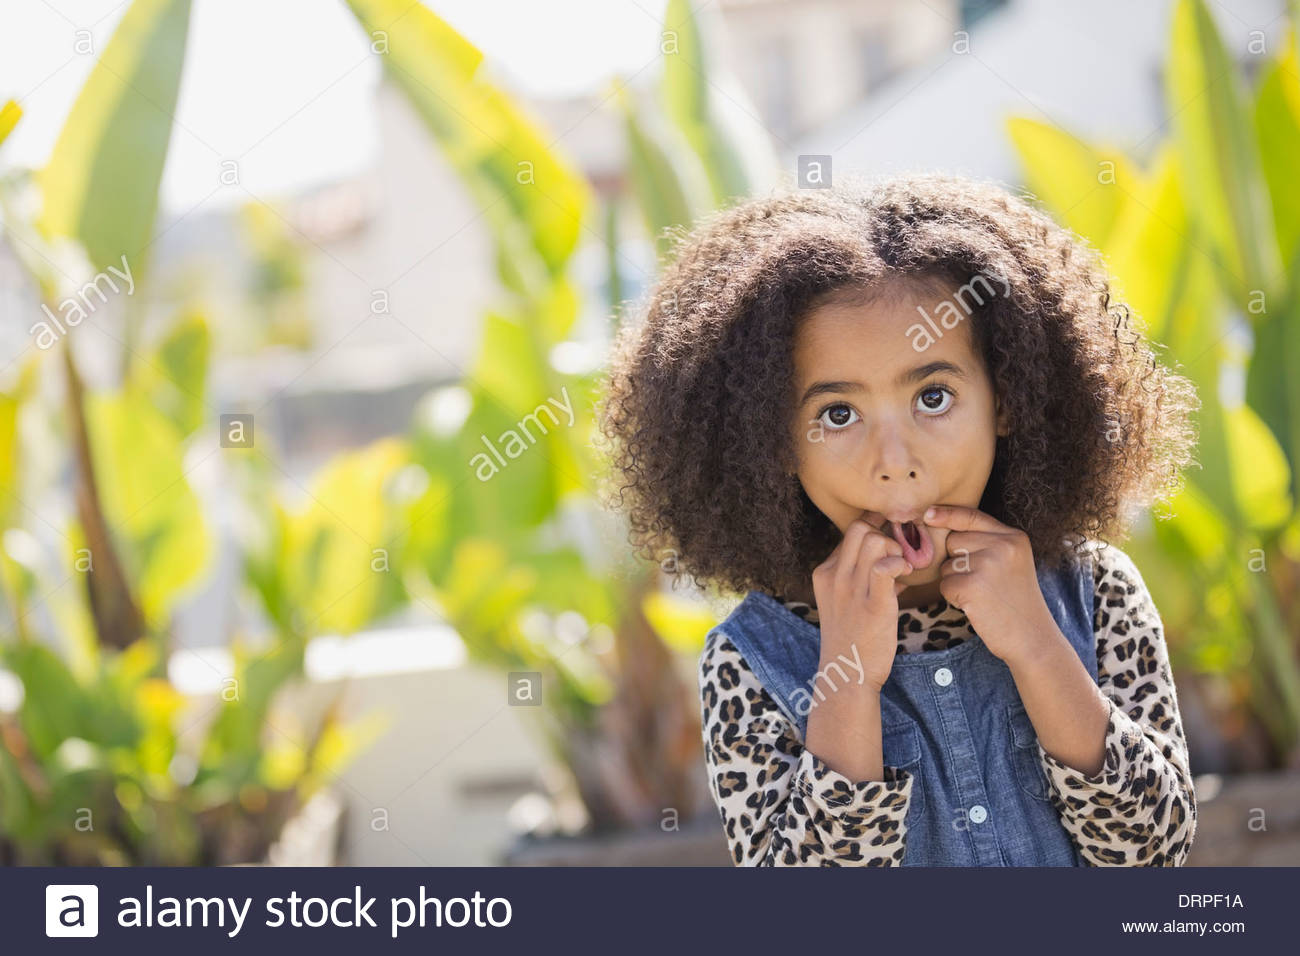 Portrait of cute girl making faces outdoors - Stock Image